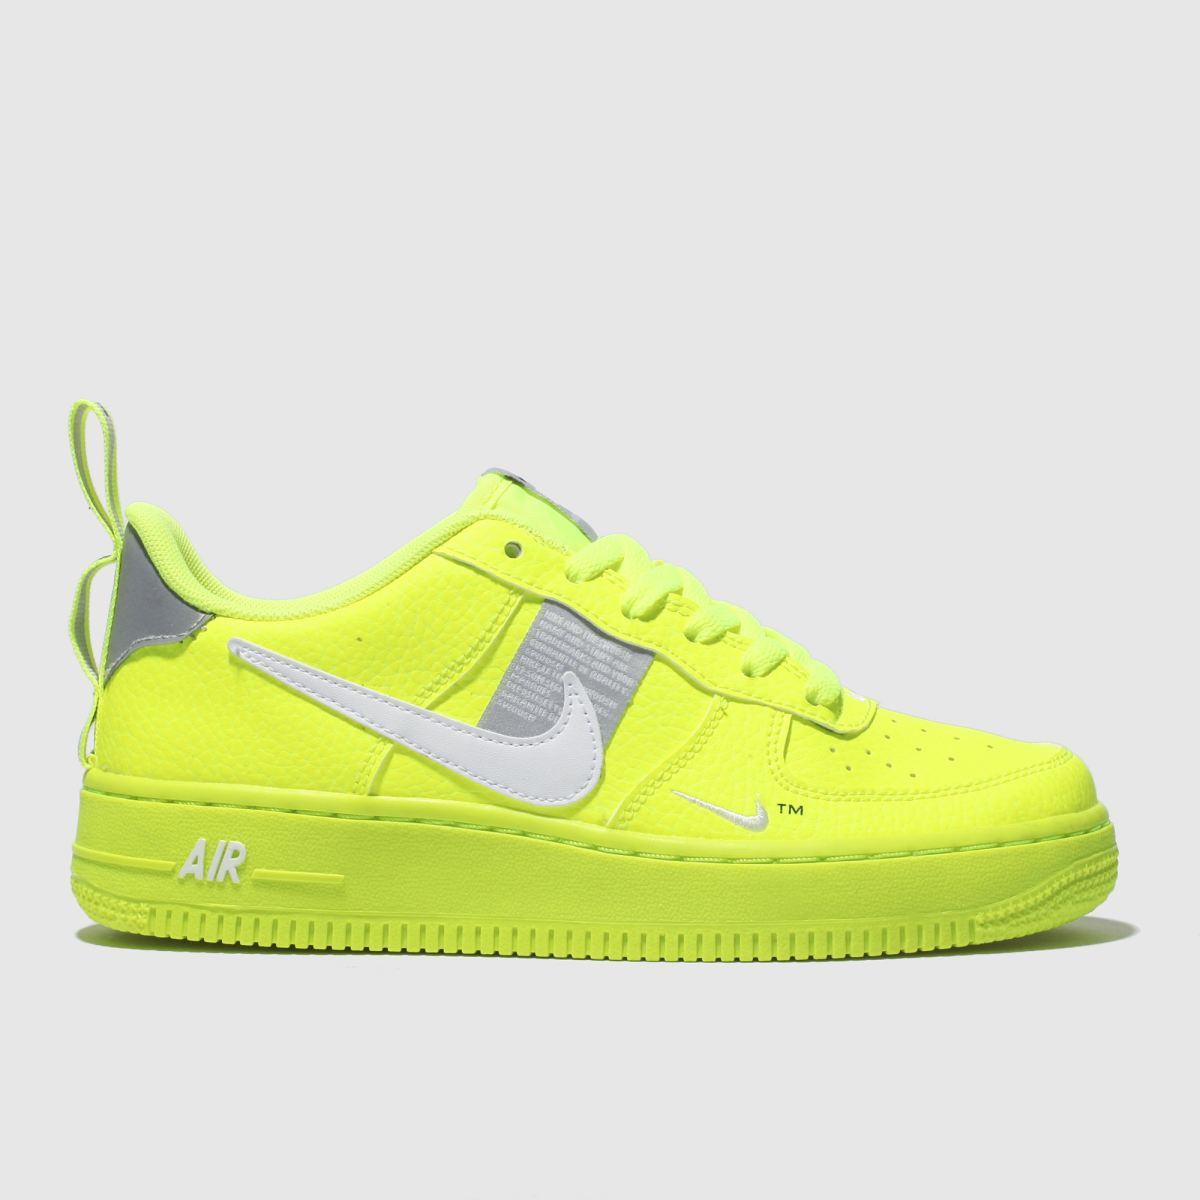 Nike Lime Air Force 1 Lv8 Utility Trainers Youth